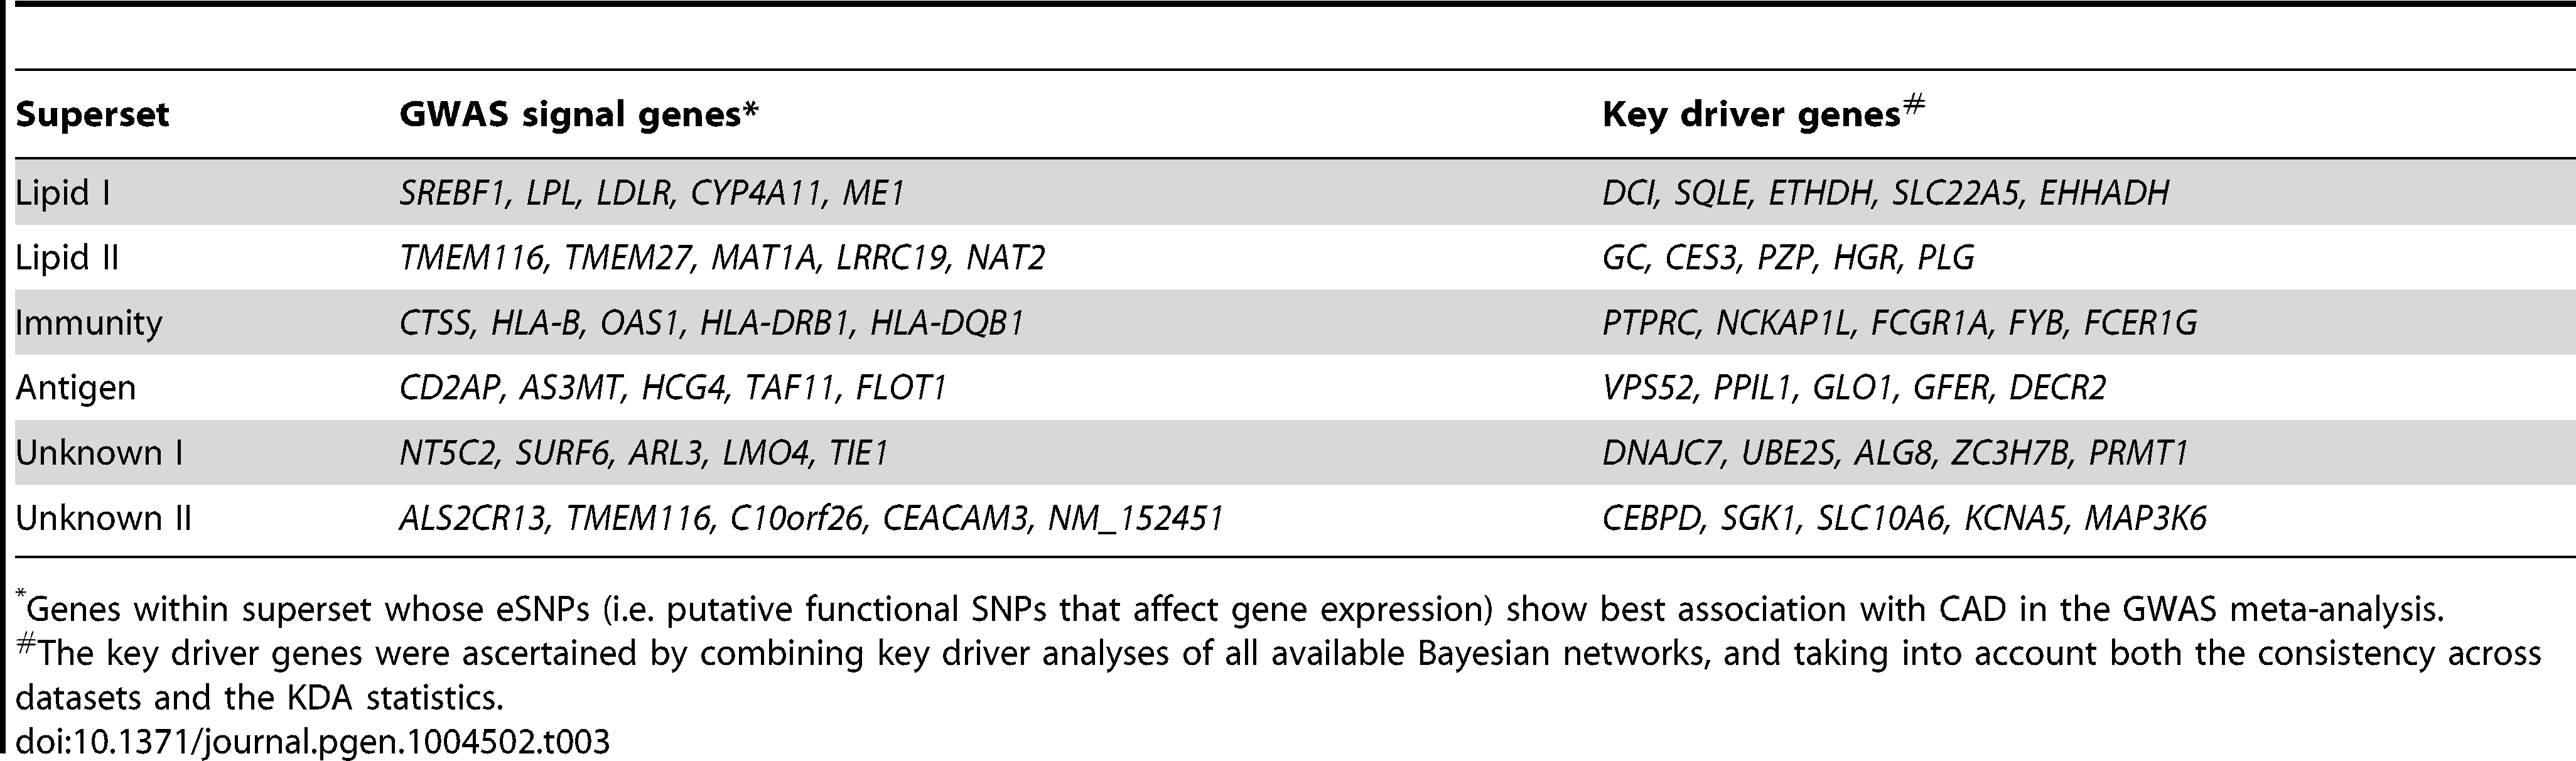 "Top five genes whose eSNPs show strongest association with CAD in GWAS (termed ""GWAS signal genes"") and key driver genes for selected CAD-associated supersets."